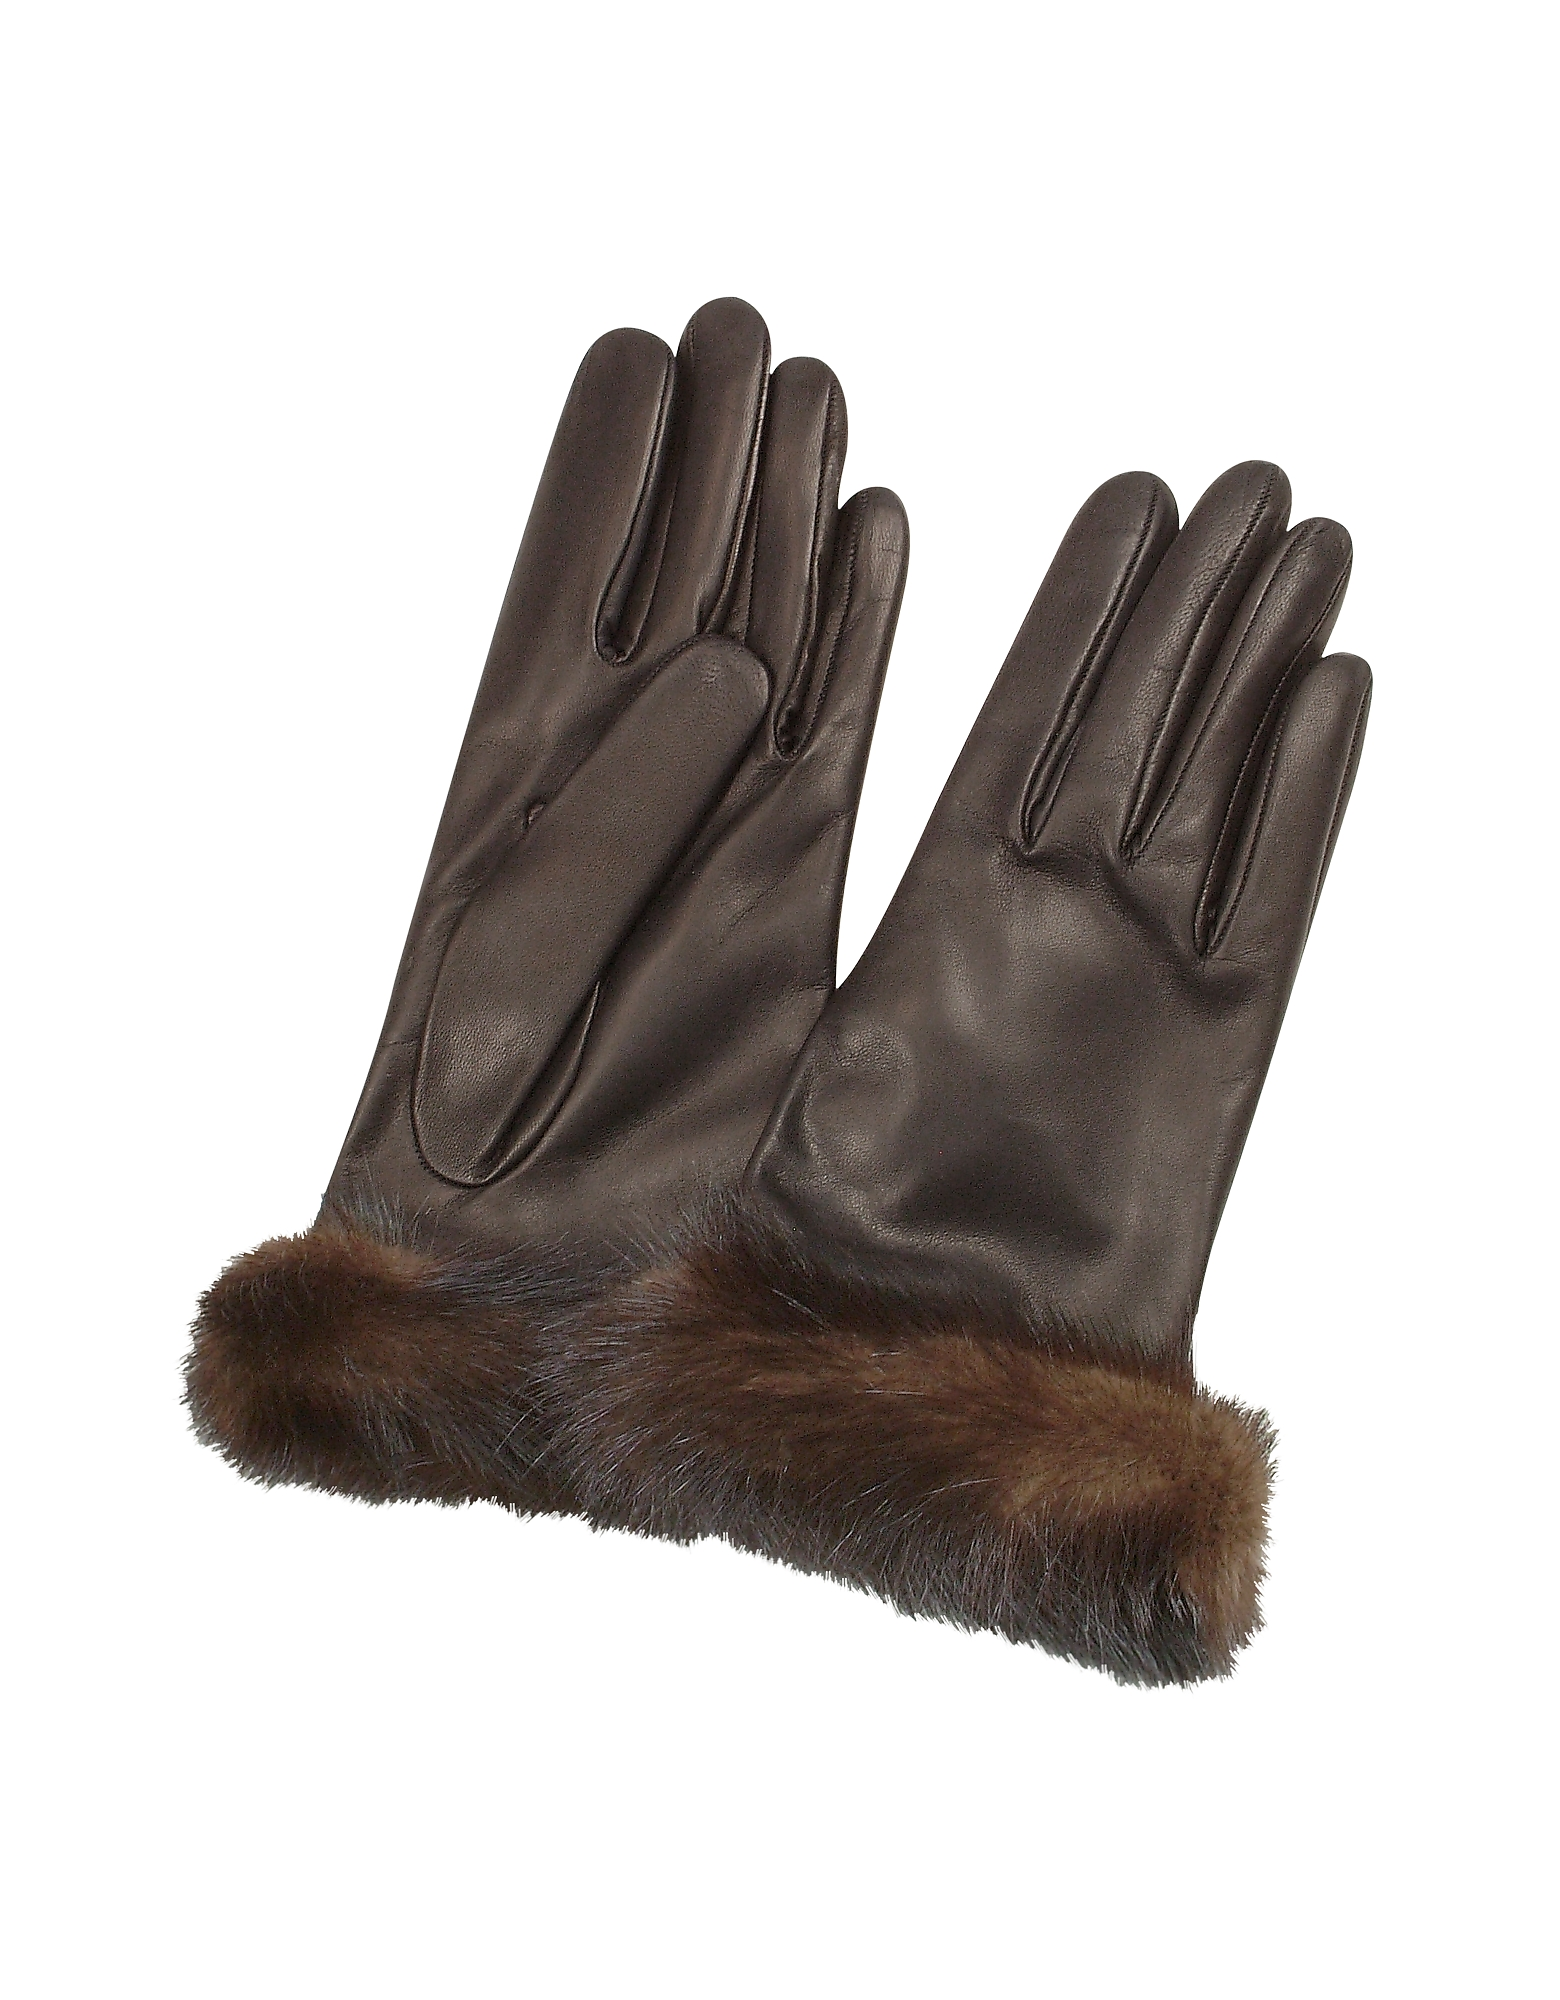 Forzieri Women's Gloves, Women's Dark Brown Italian Nappa Leather Gloves w/Mink Fur